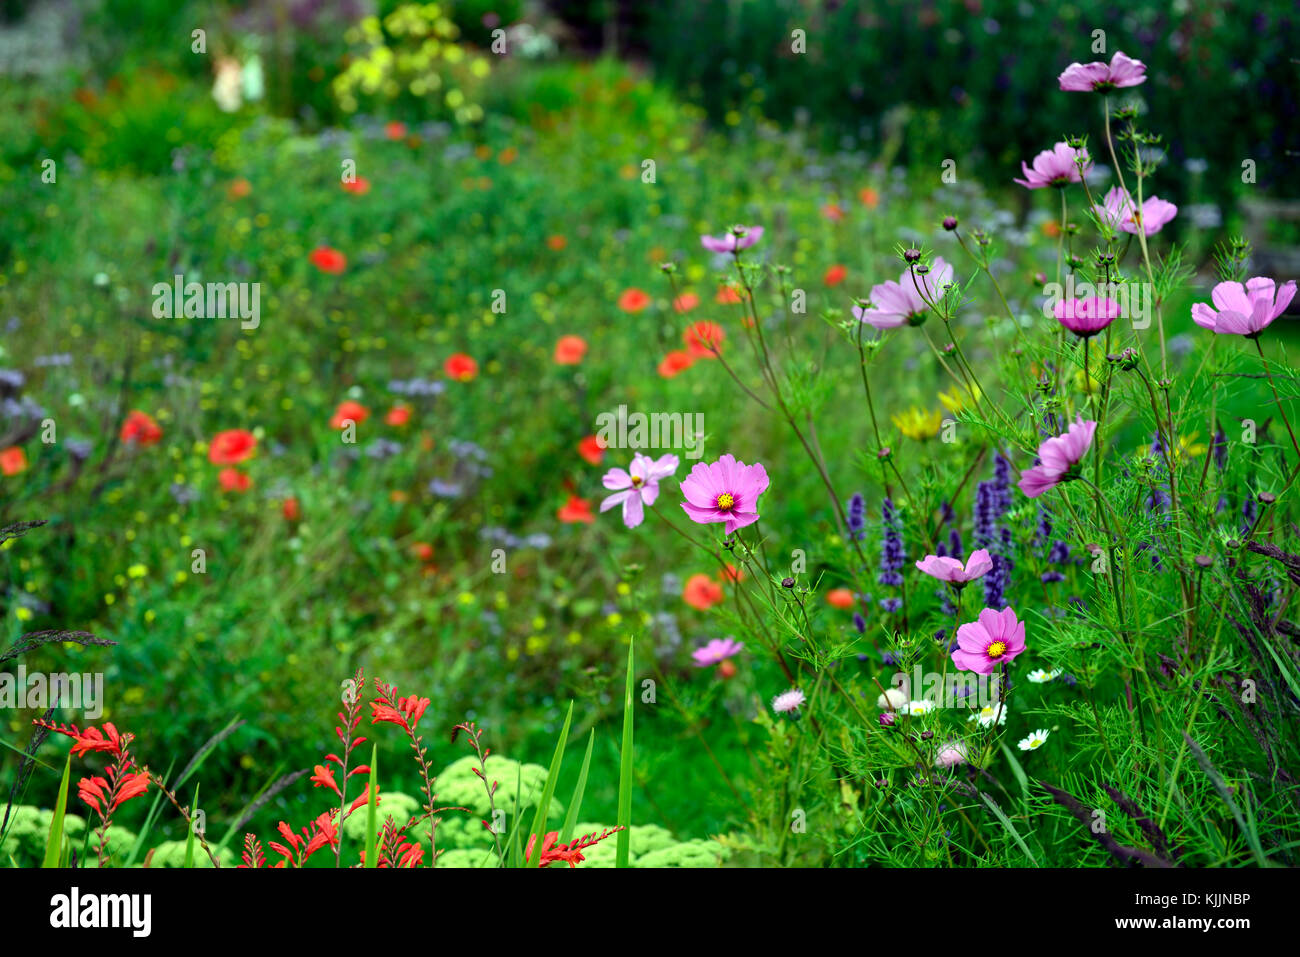 Cosmos flower single pink annualannuals flower flowers stock cosmos flower single pink annualannuals flower flowers flowering rm floral izmirmasajfo